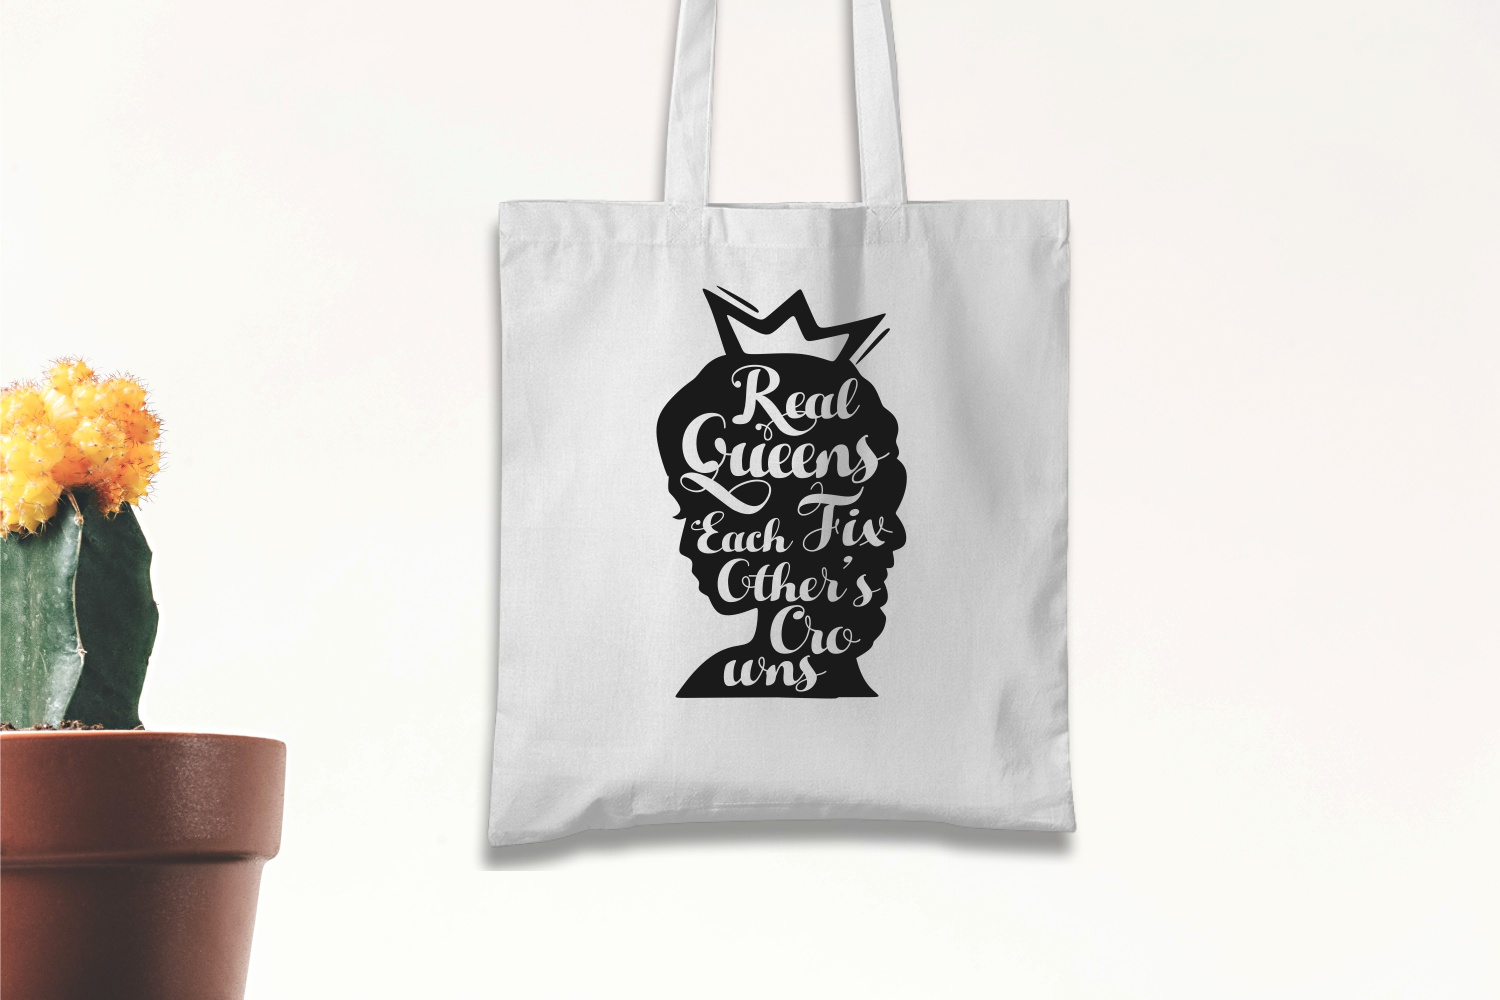 White eco-friendly bag with lettering and crown.